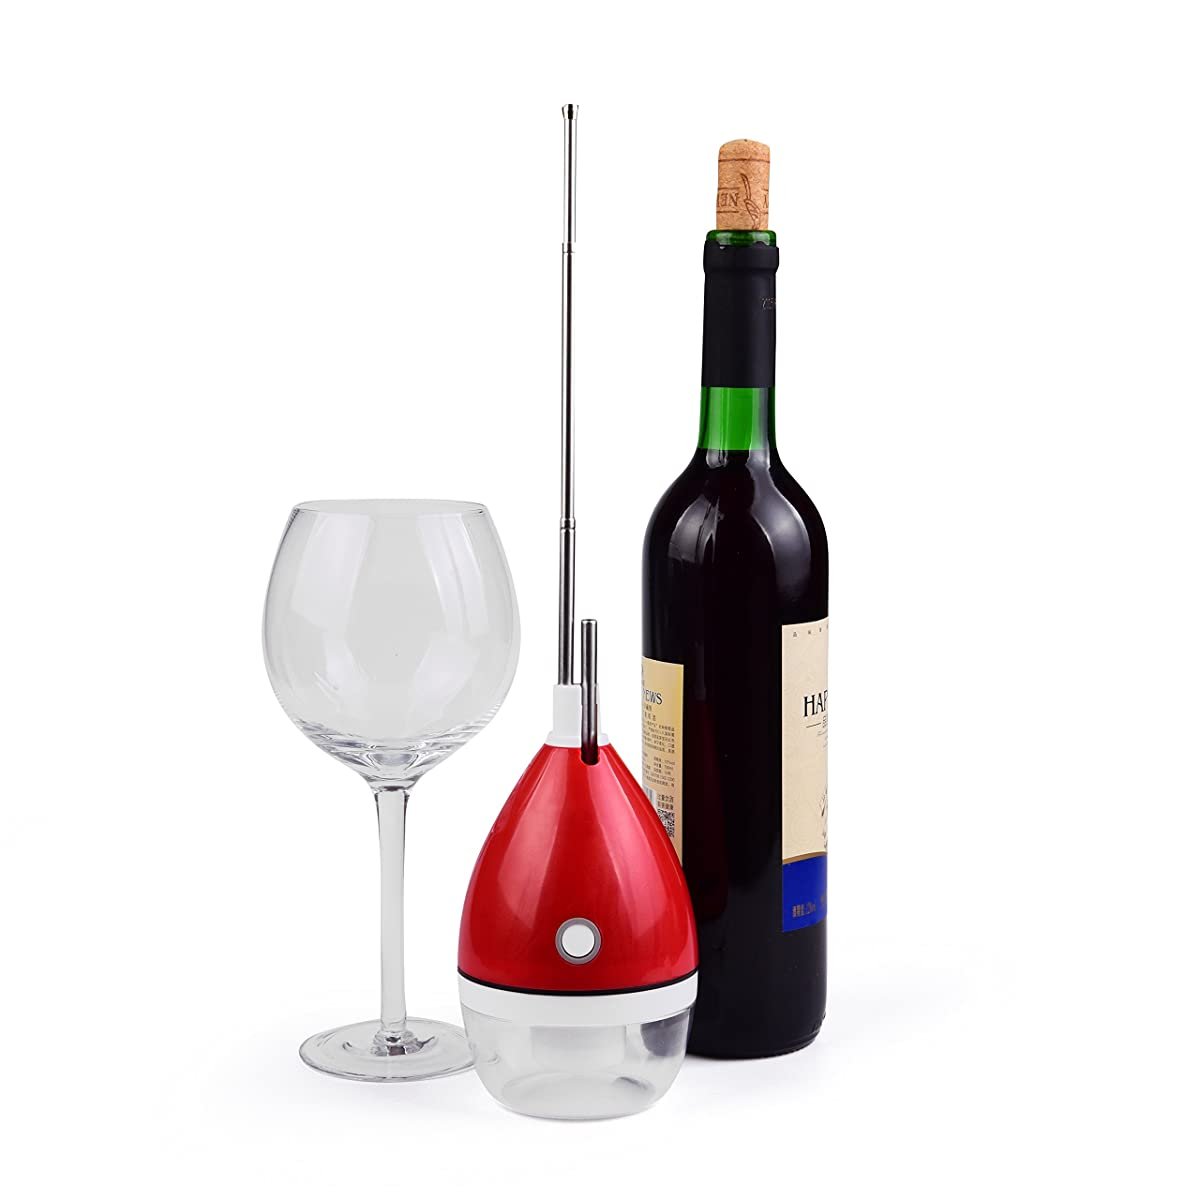 Premium Wine Aerator Decanter - Instant Aeration, Lightweight, Portable - Battery Operated Aerating Pourer & Wine Decanter